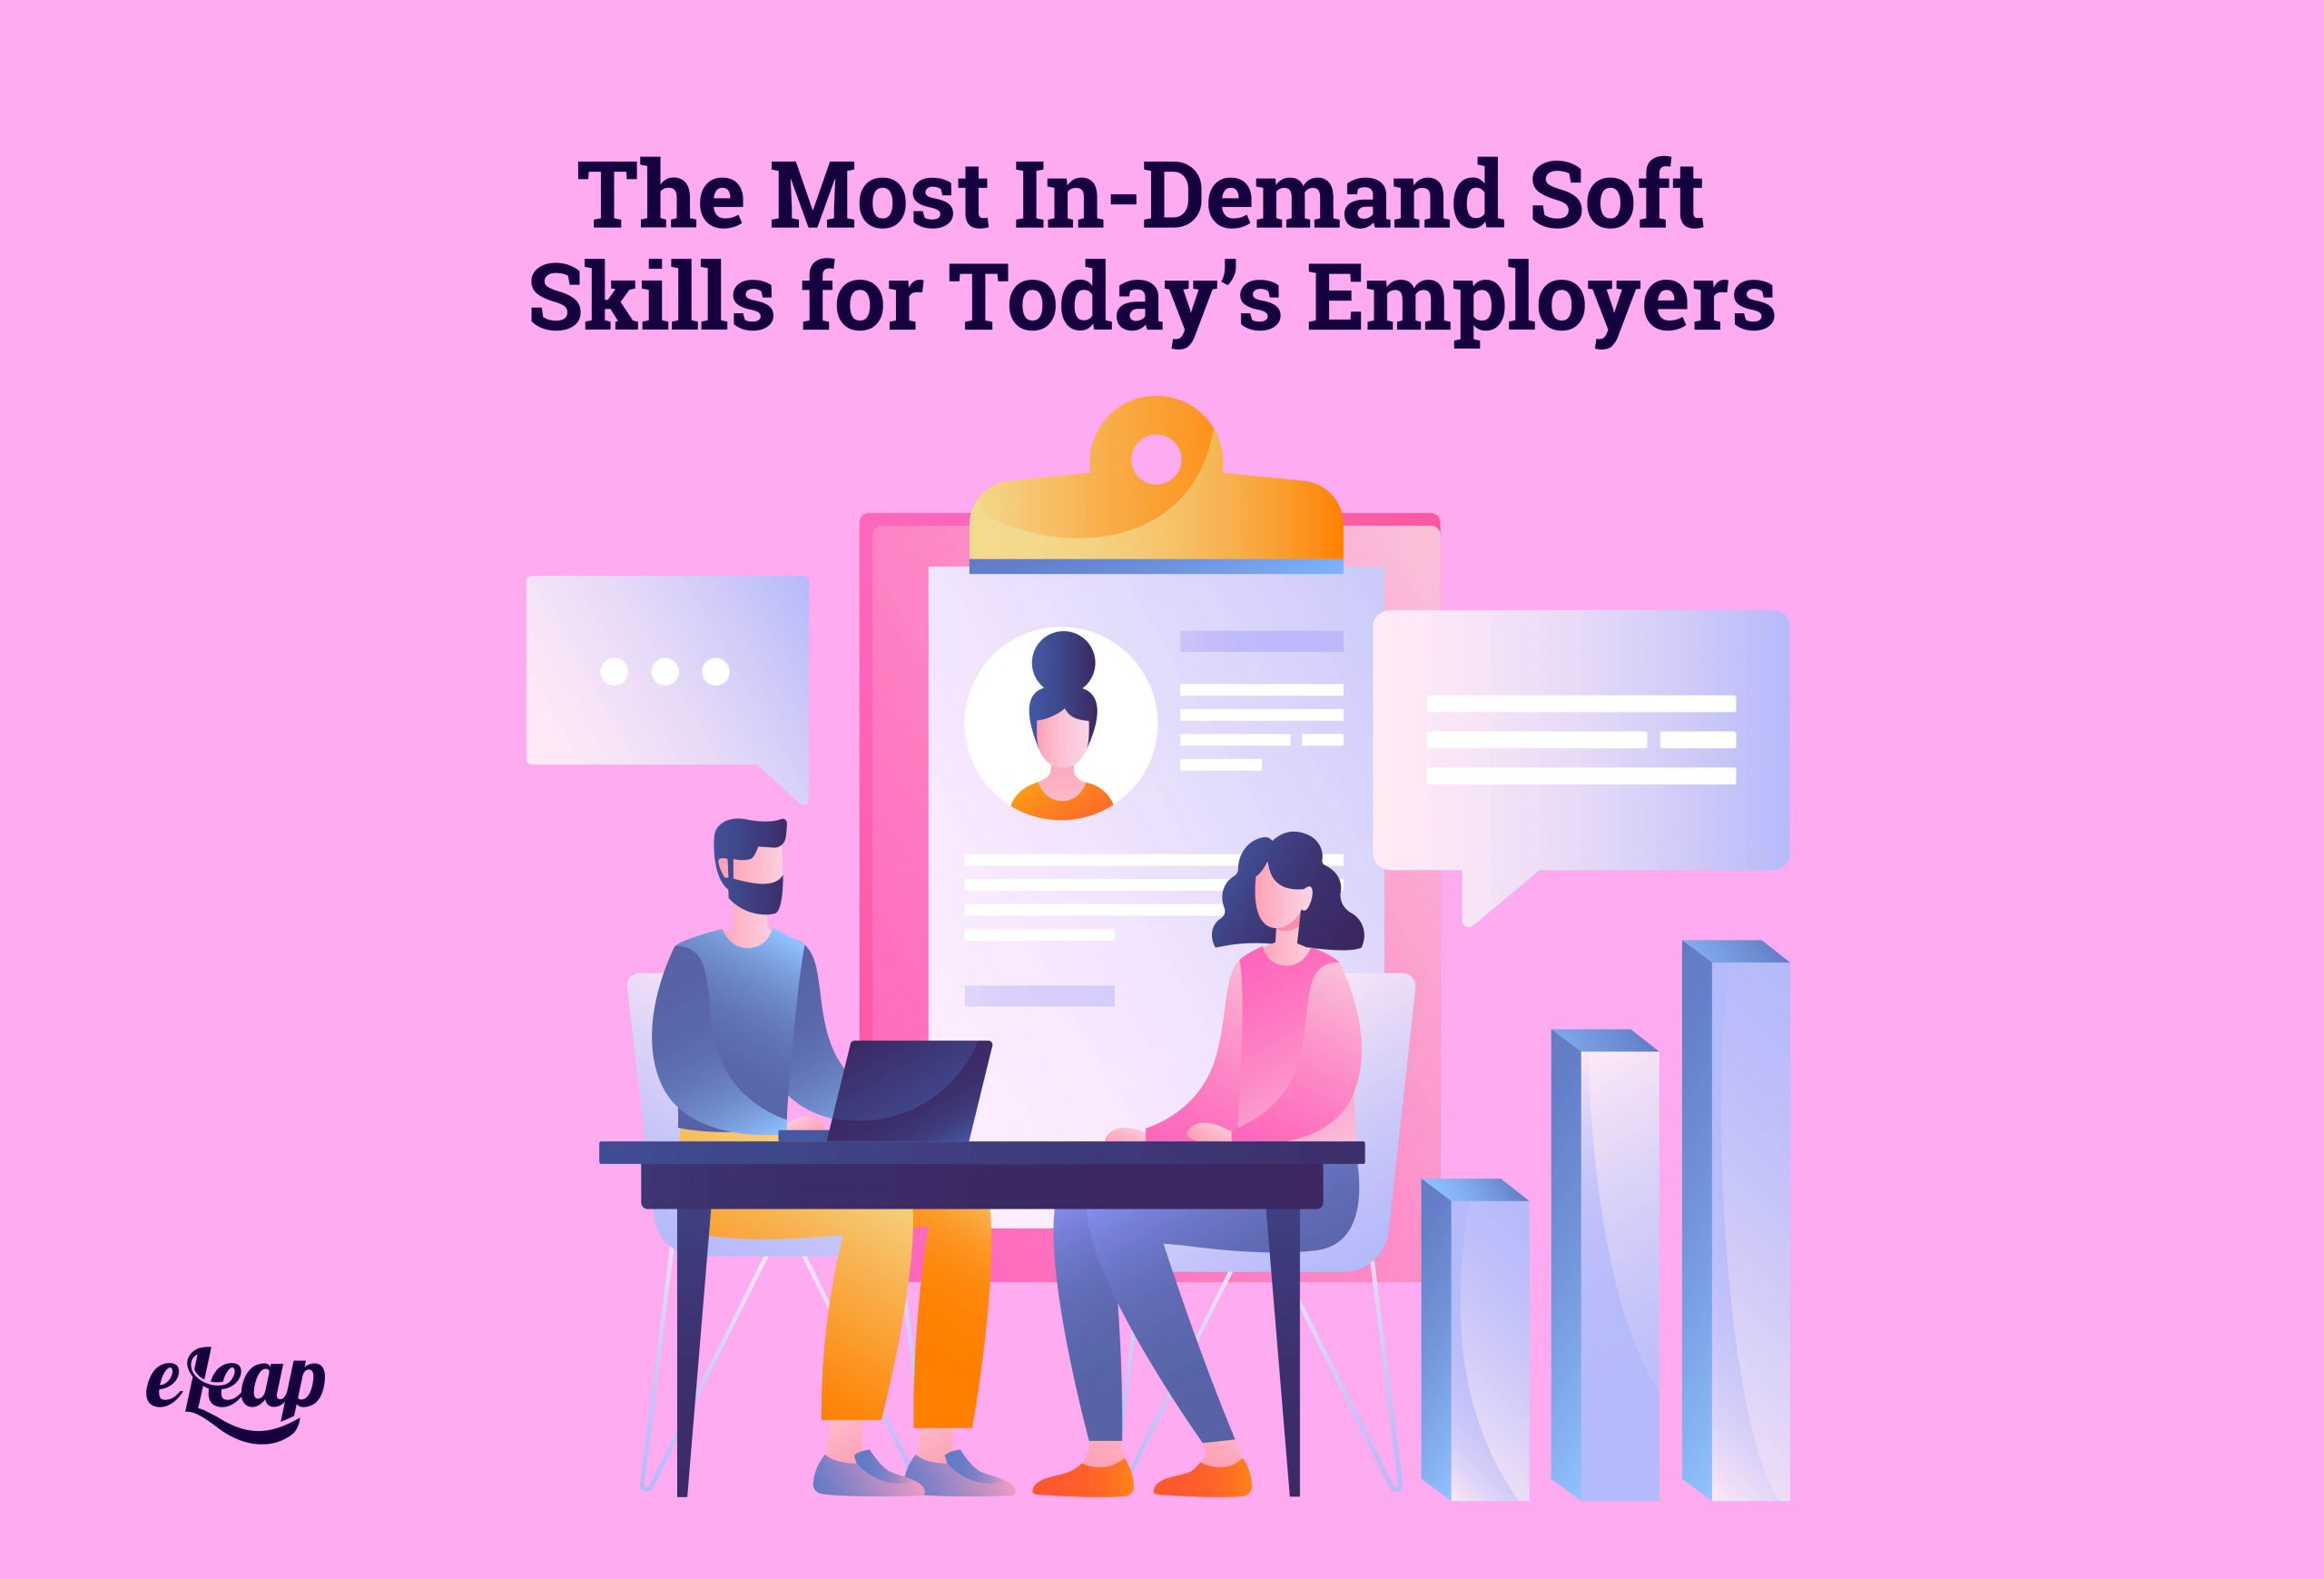 The Most In-Demand Soft Skills for Today's Employers